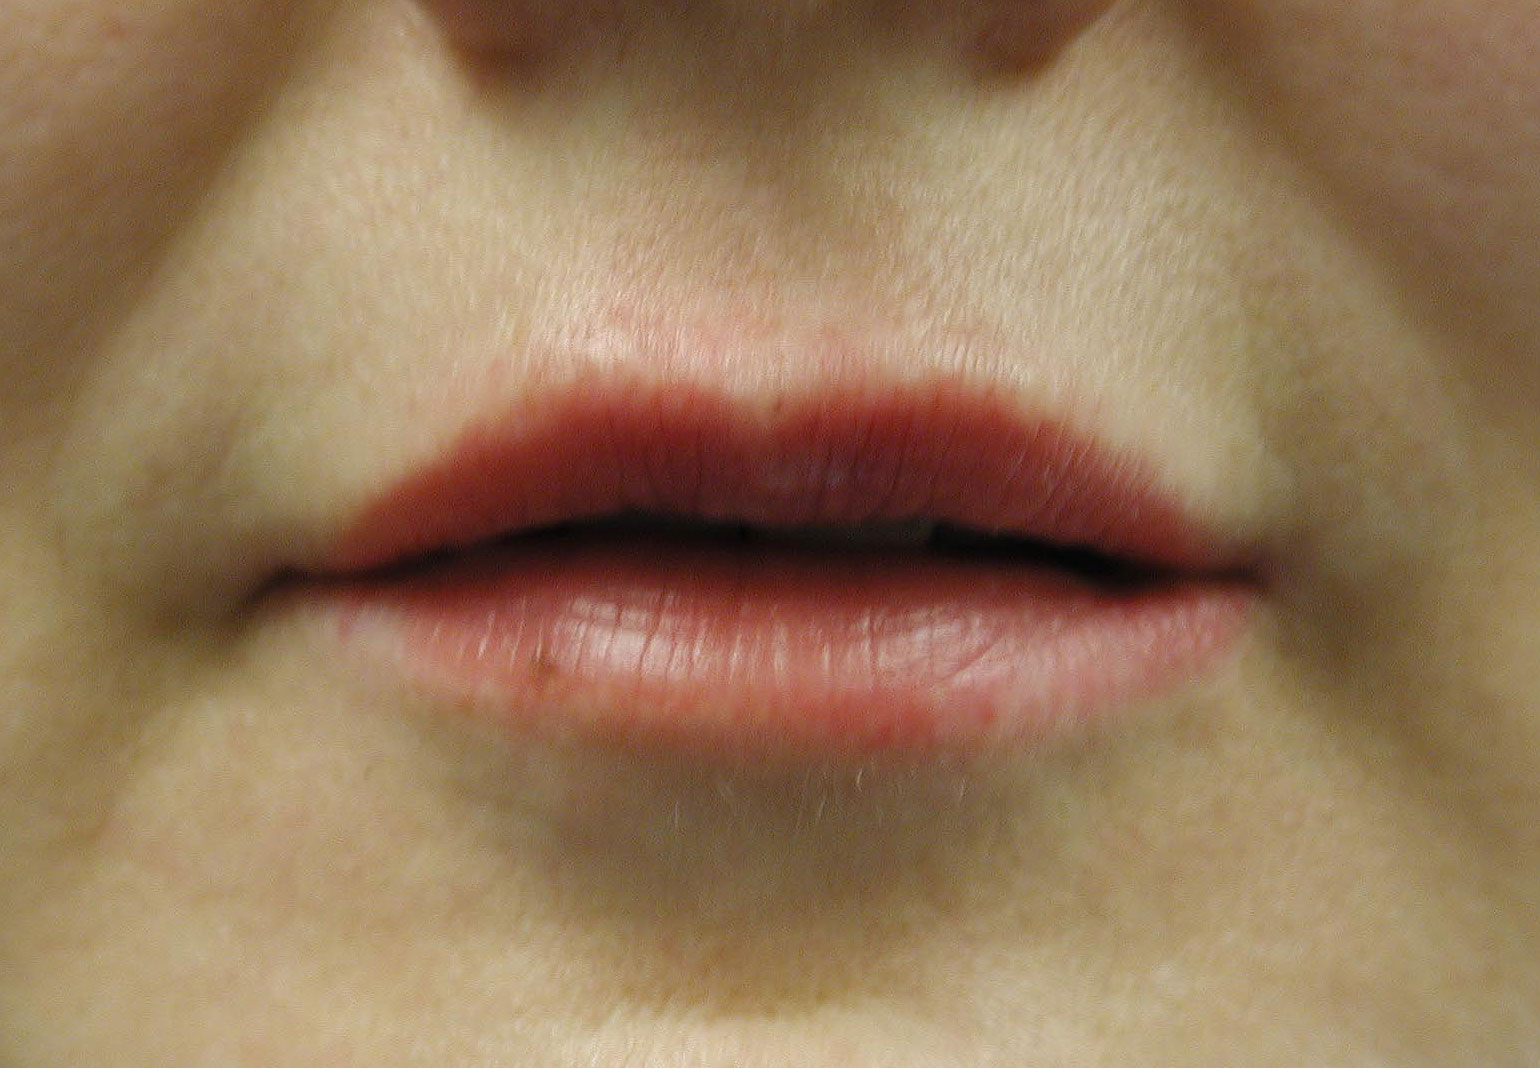 Collagen Injection - Lip Injection Pictures